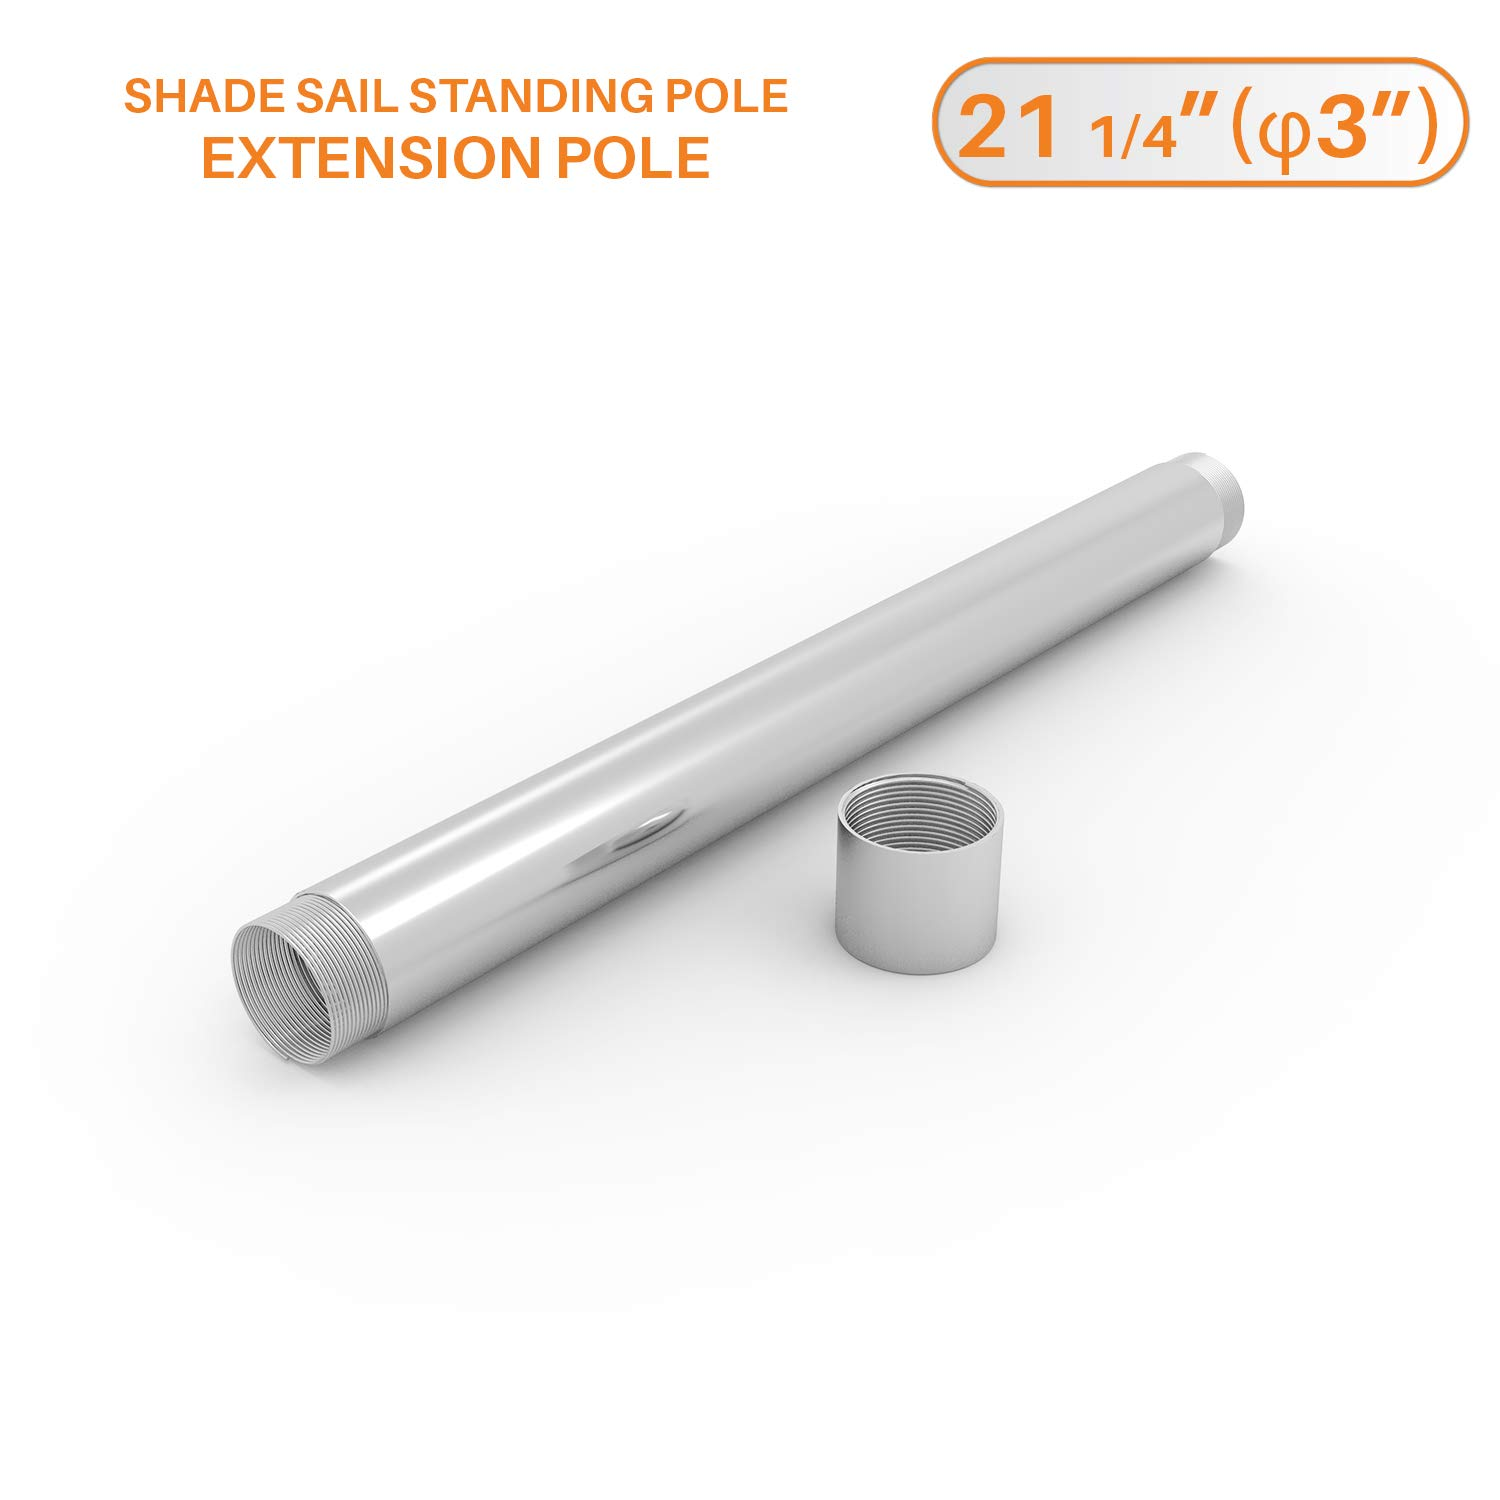 TANG 21-1/4''Extension Pole for 96'' (8'Ft.) Sun Shade Sail Pole Heavy Duty Steel Fence Post Coupling Connector Metal Stand Canopy Awning Sail Pole Post by TANG